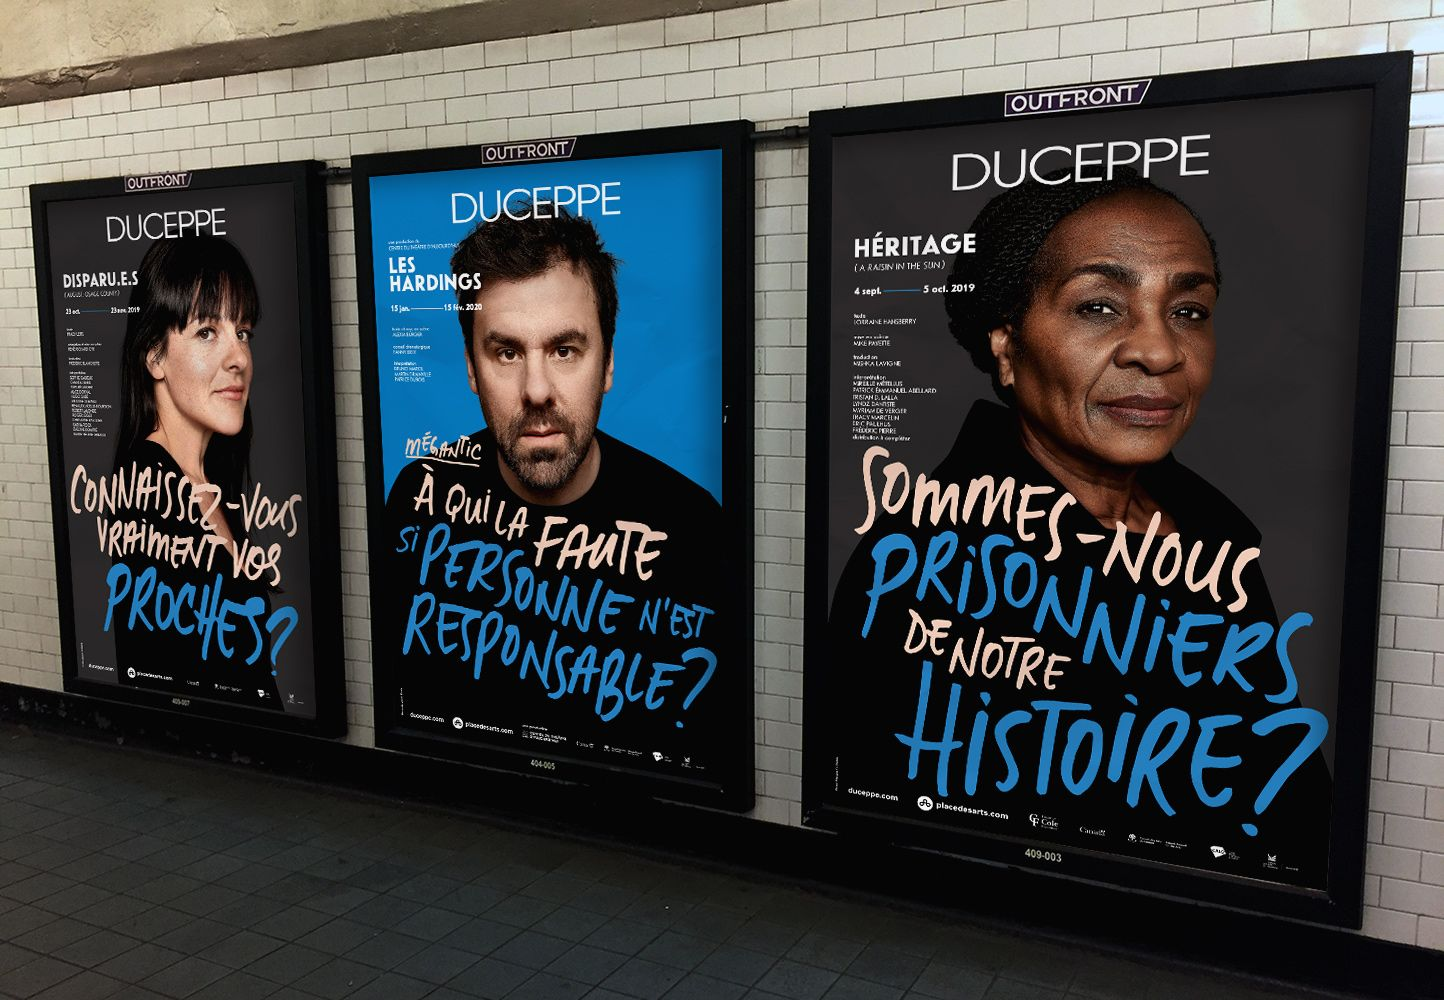 mockup of Duceppe Theatre posters photographs by Maxyme G DElisle